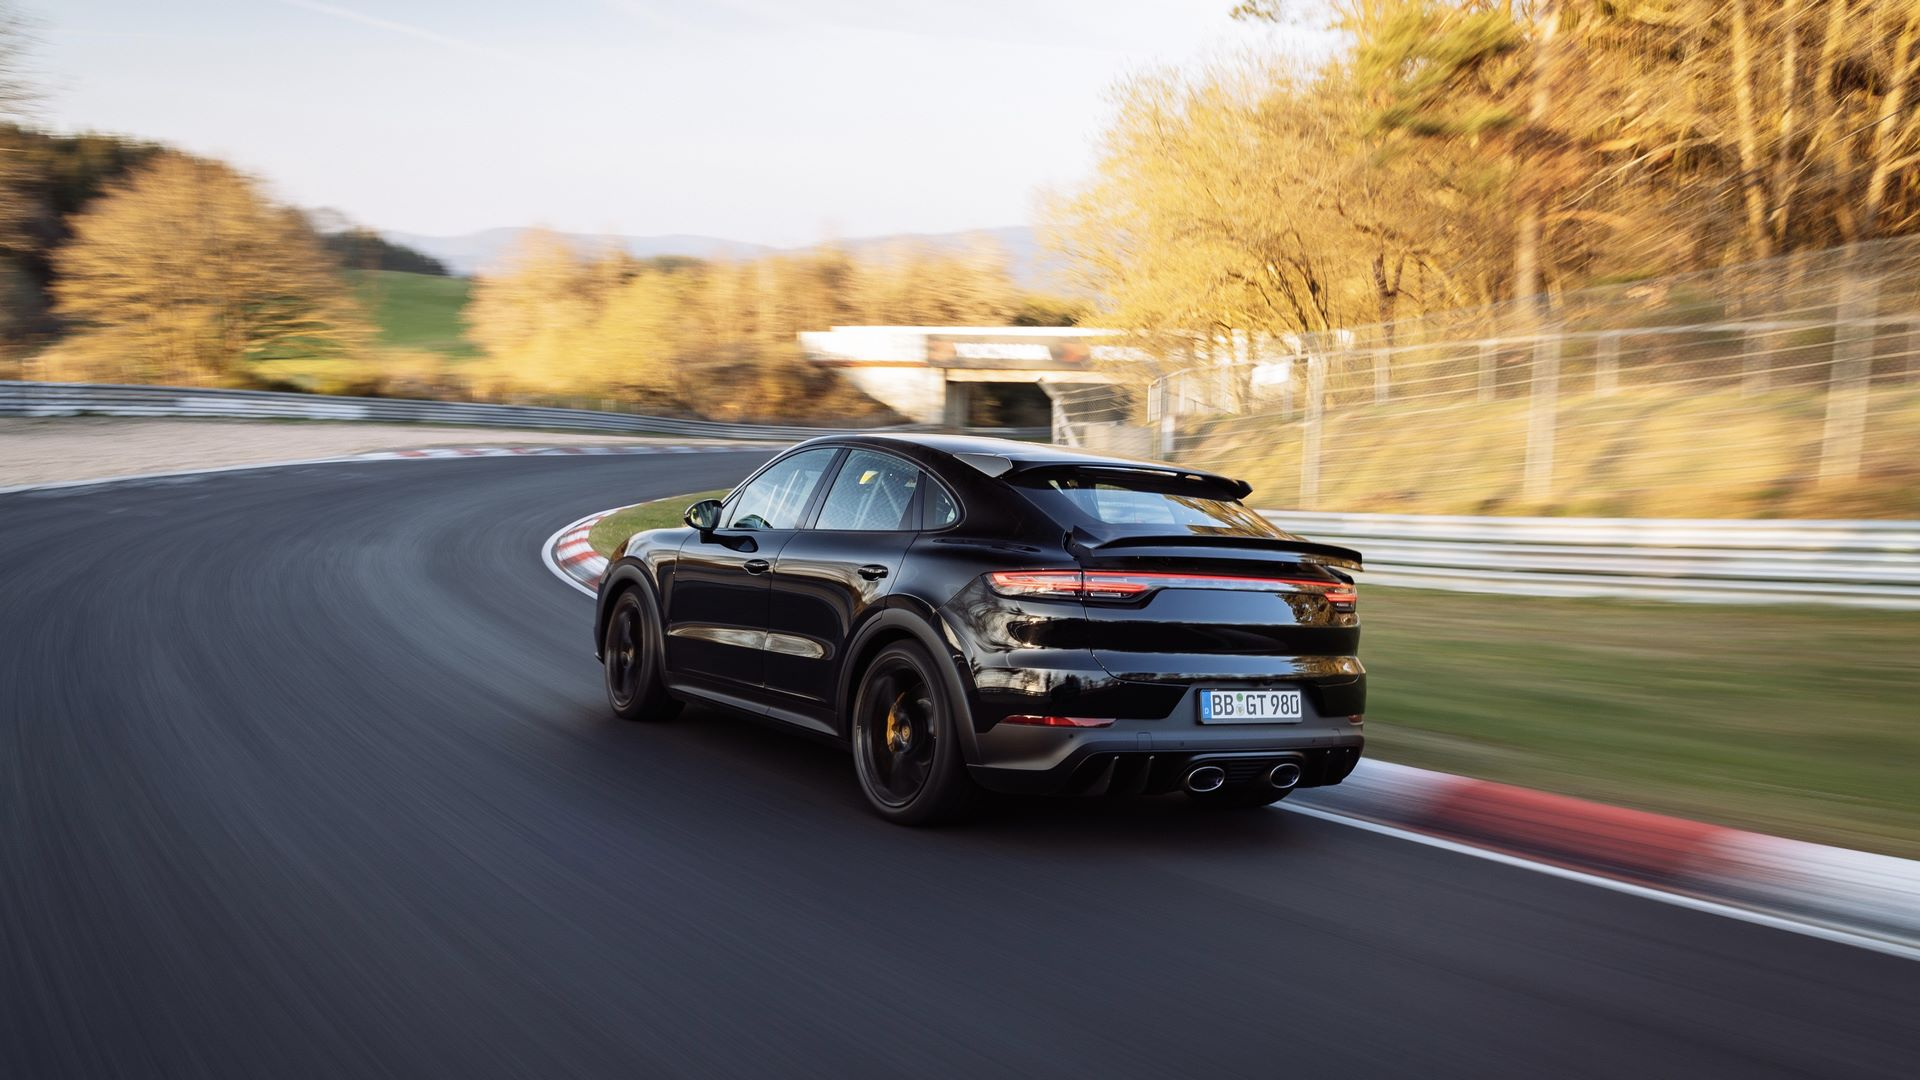 Porsche-Cayenne-Coupe-Nurburgring-SUV-lap-record-6